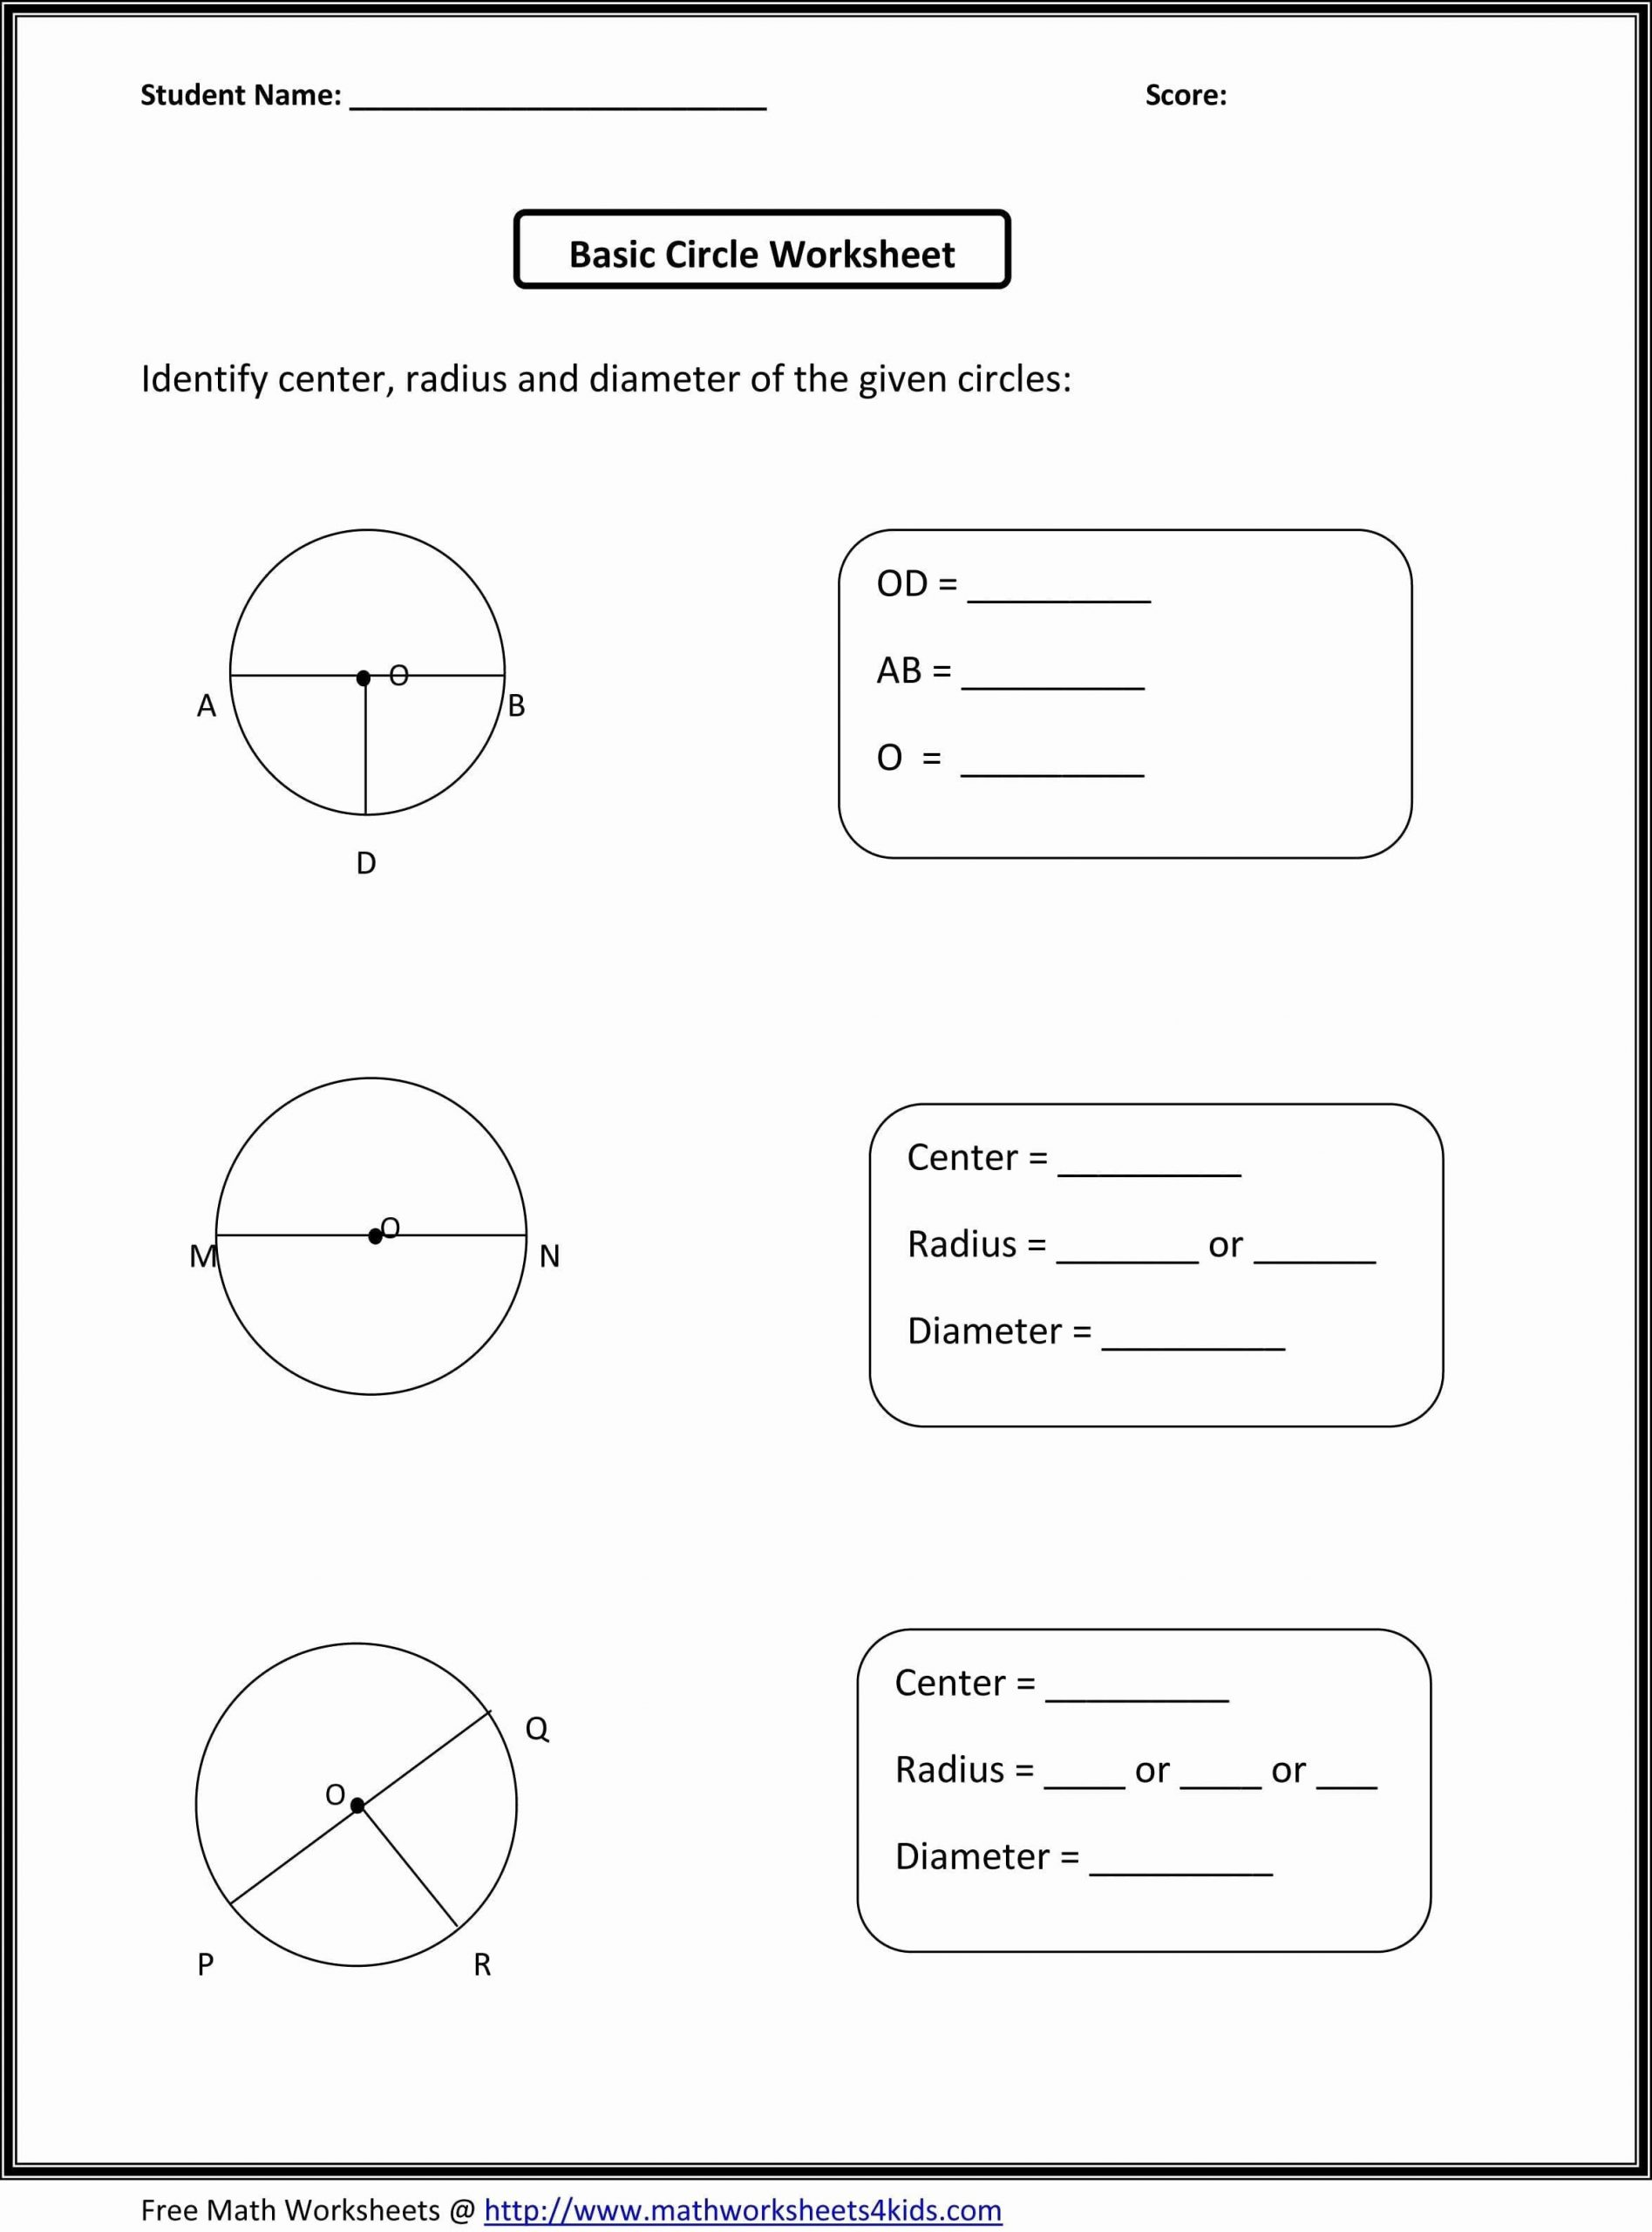 30 Energy Transformation Worksheet Answers